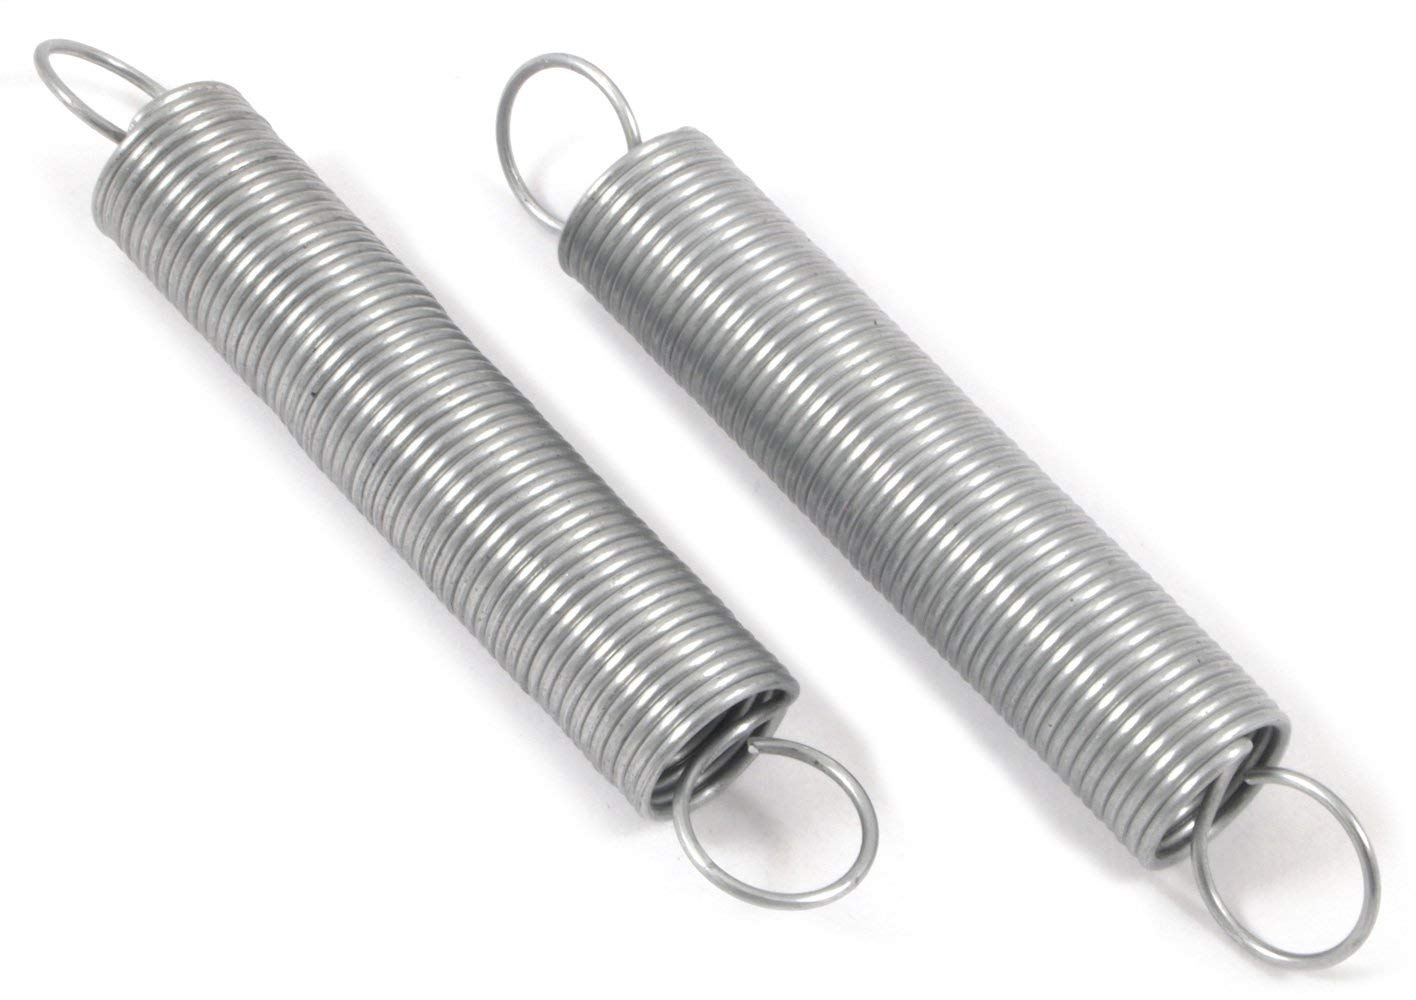 Forney 72538 Wire Spring Extension, 7/16-Inch-by-2-3/4-Inch-by-.035-Inch, 2-Pack